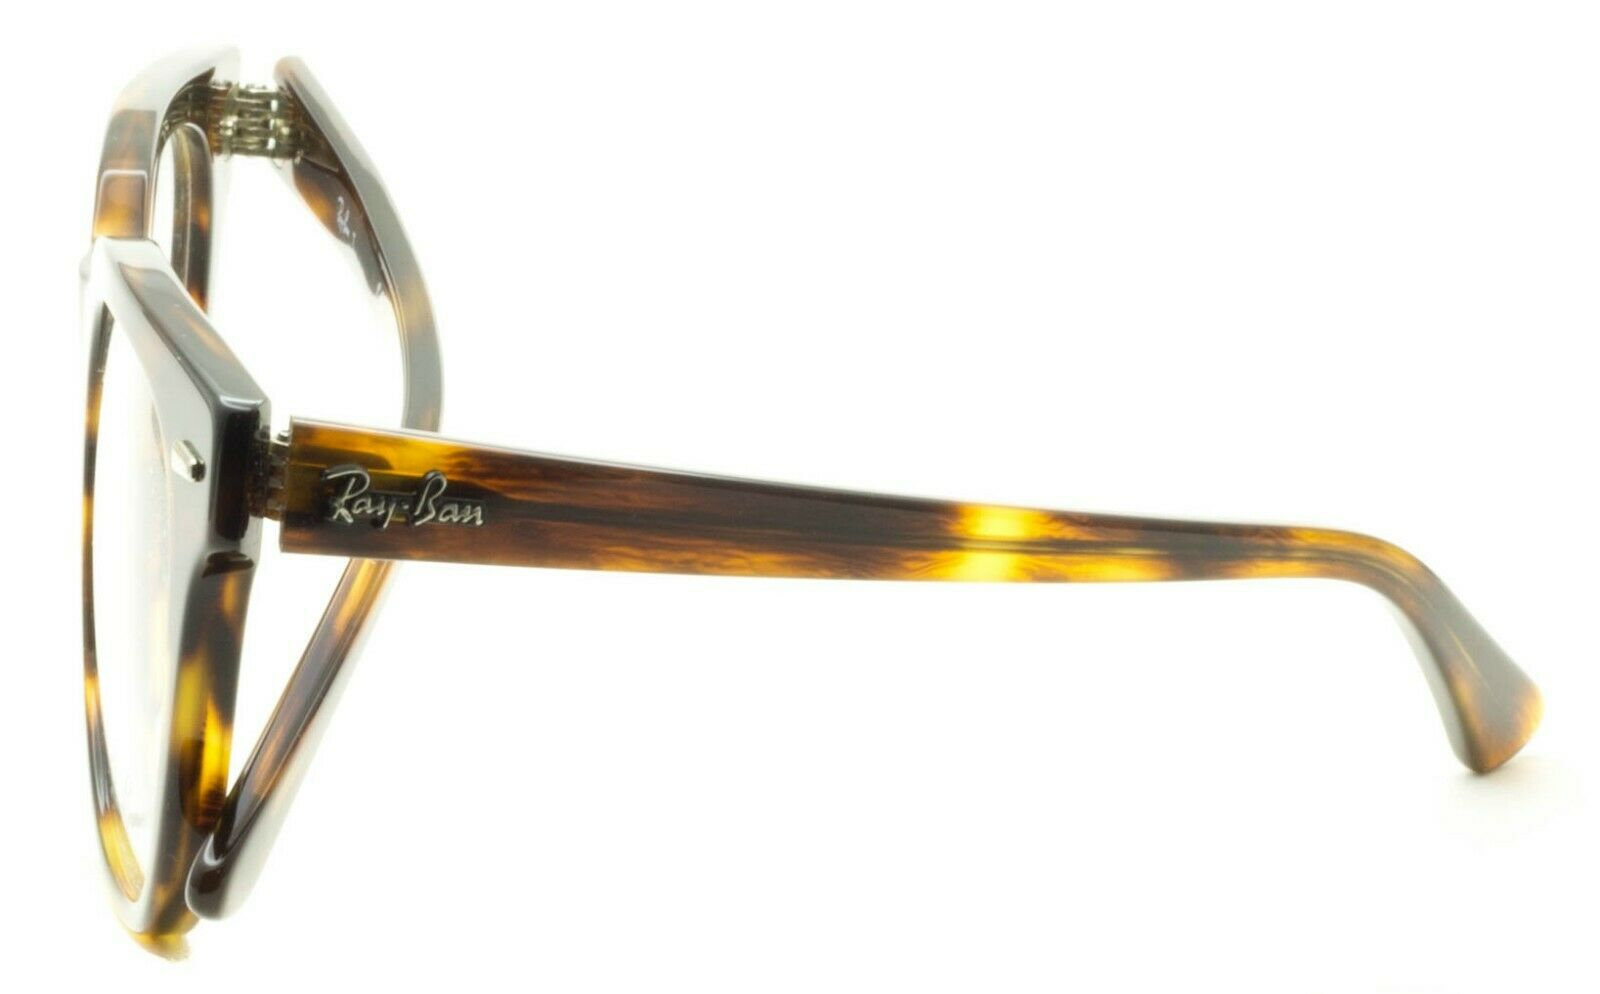 RAY BAN METEOR RB 5377 2144 50mm FRAMES RAYBAN Glasses RX Optical Eyewear - New